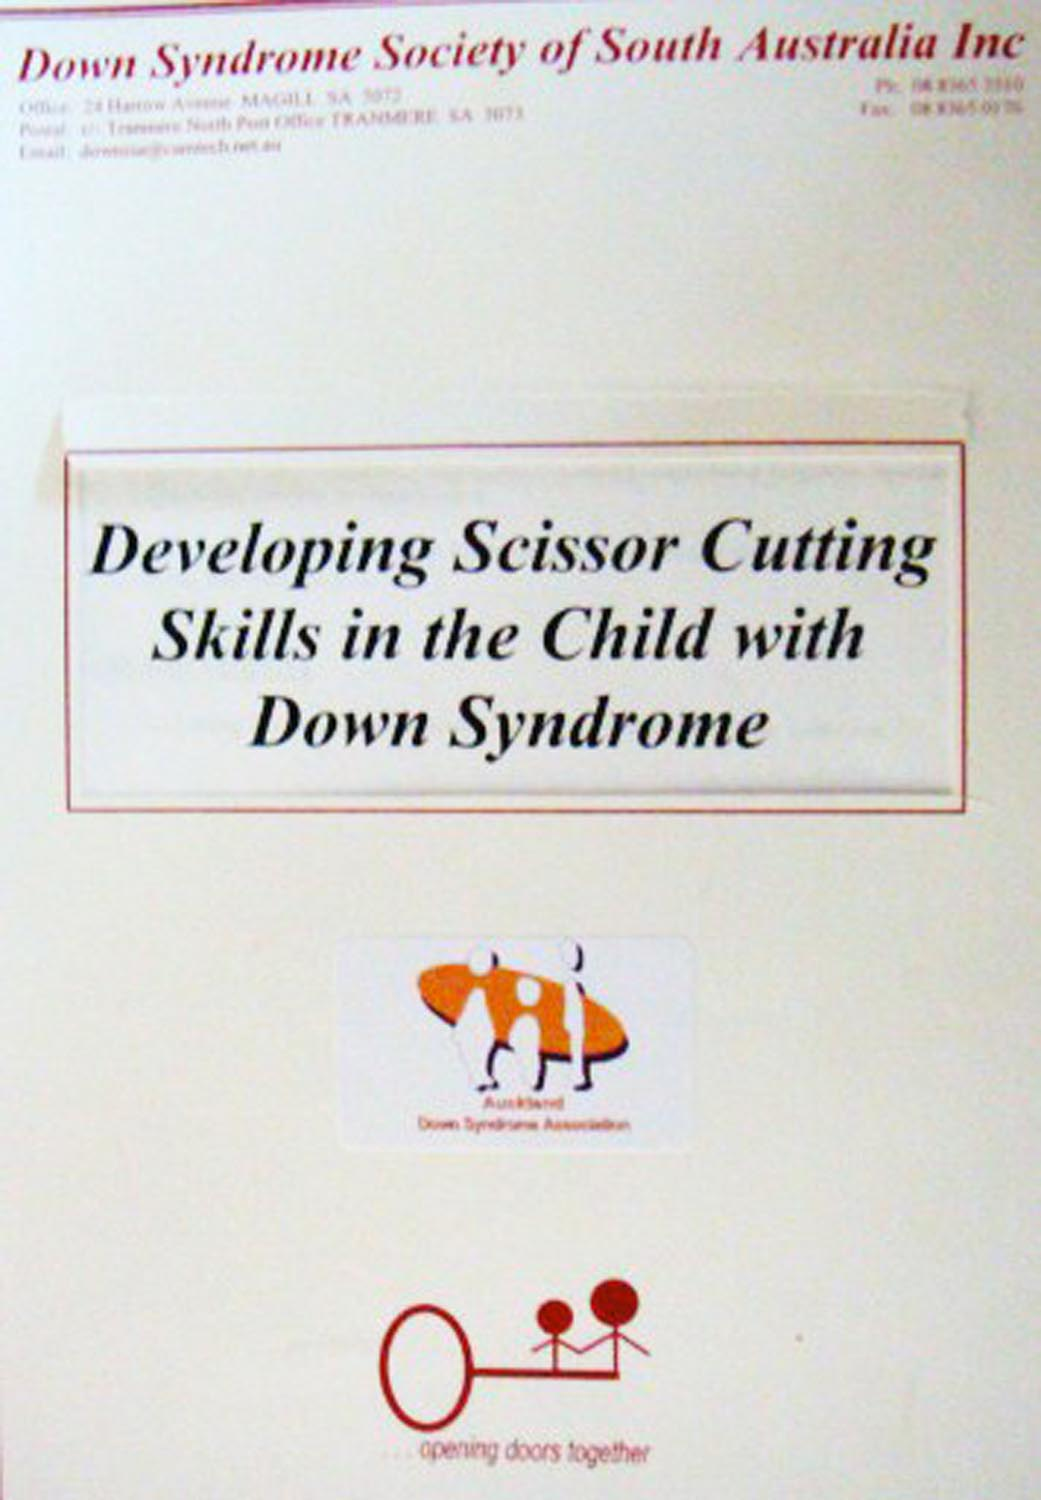 Developing Scissor Cutting Skills in the Child with Down Syndrome